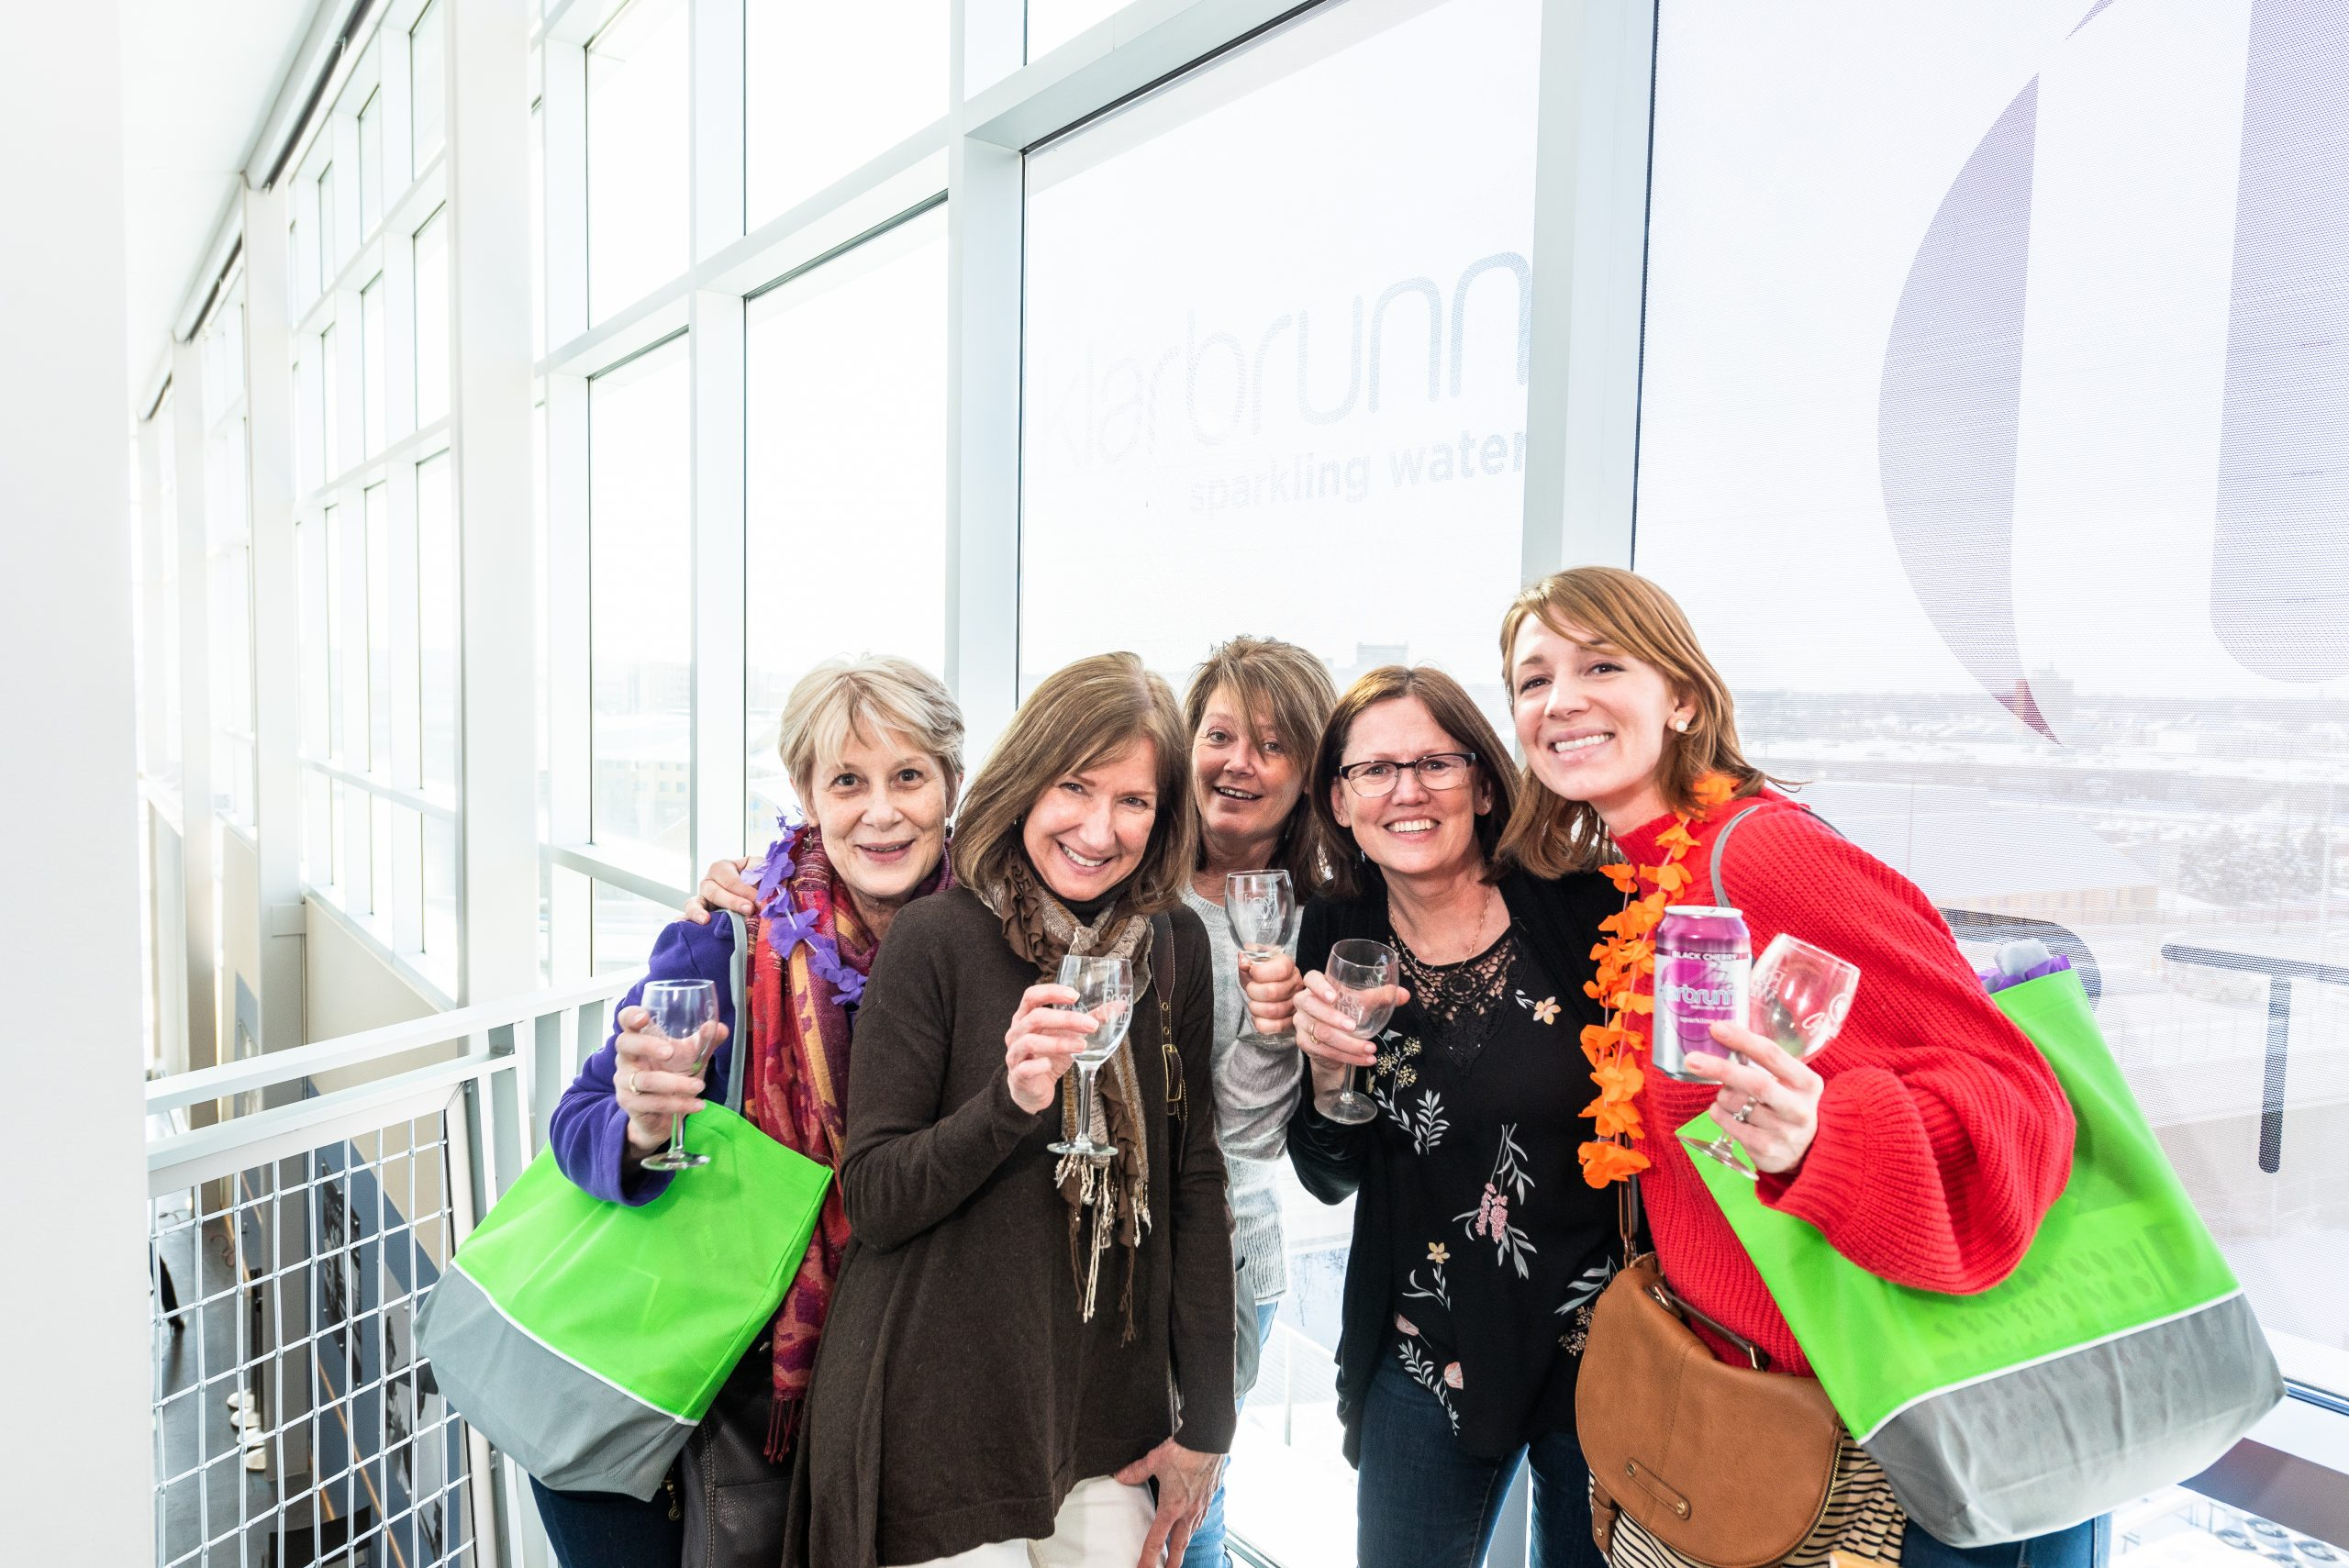 A group of female attendees at the Food & Wine Experience